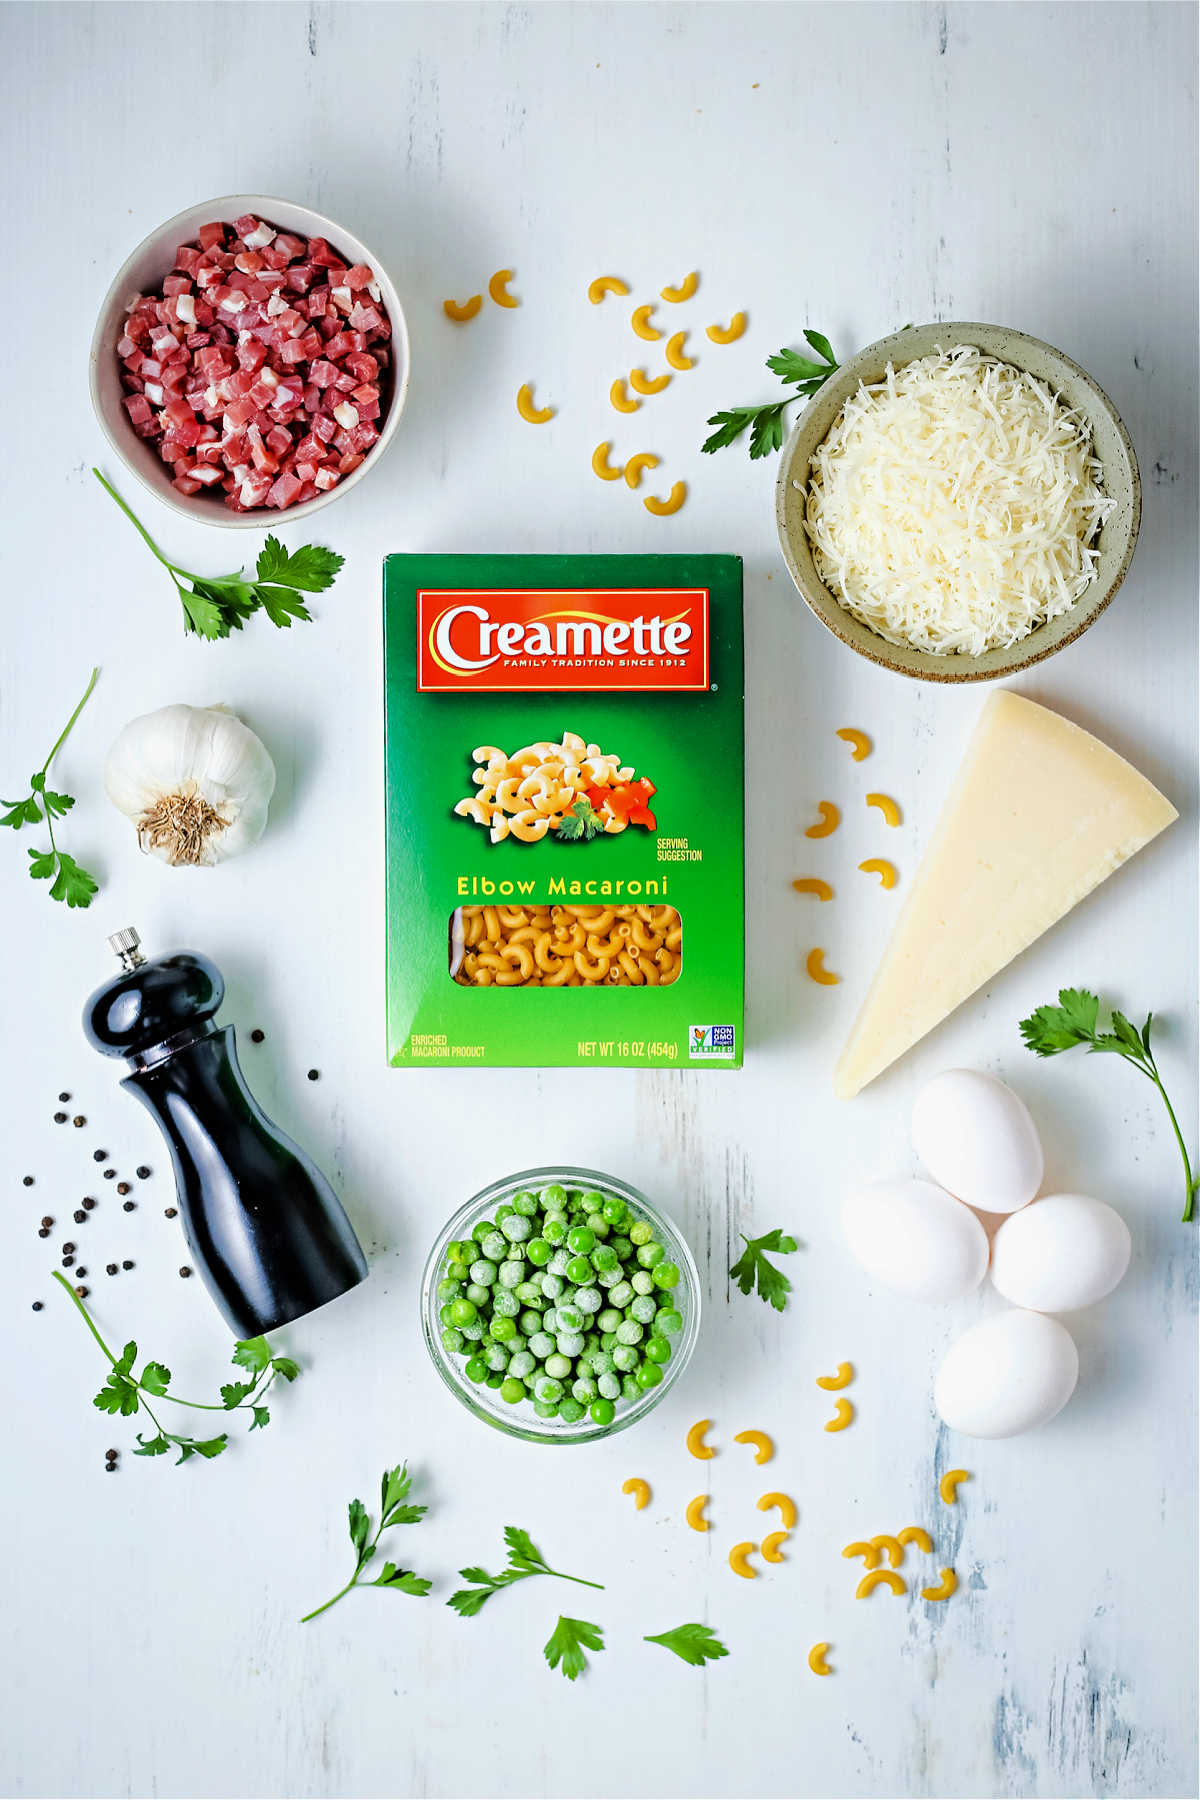 ingredients for preparing macaroni carbonara on a table: creamette elbow macaroni, cubed proscuitto, shredded parmesan cheese, frozen peas, and eggs.